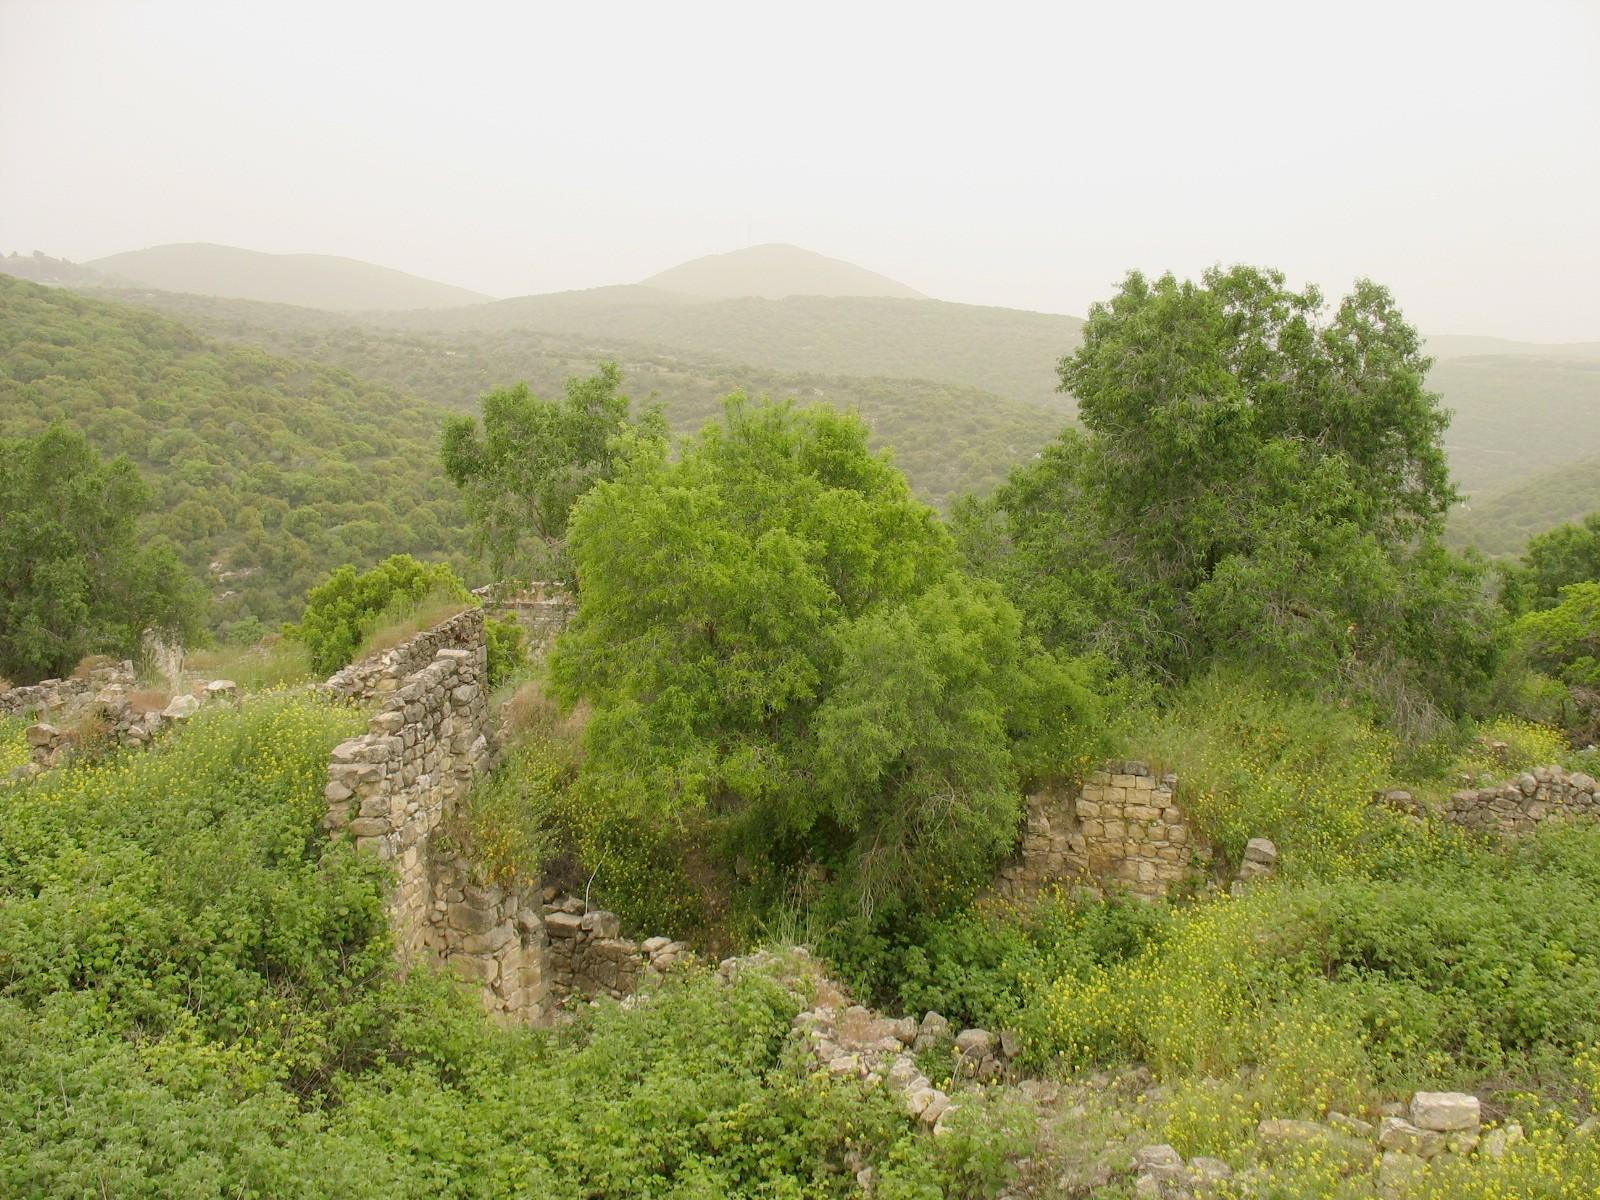 Kafr Bir'im - كفر برعم : The beautiful landscape, the destroyed village appears in the foreground